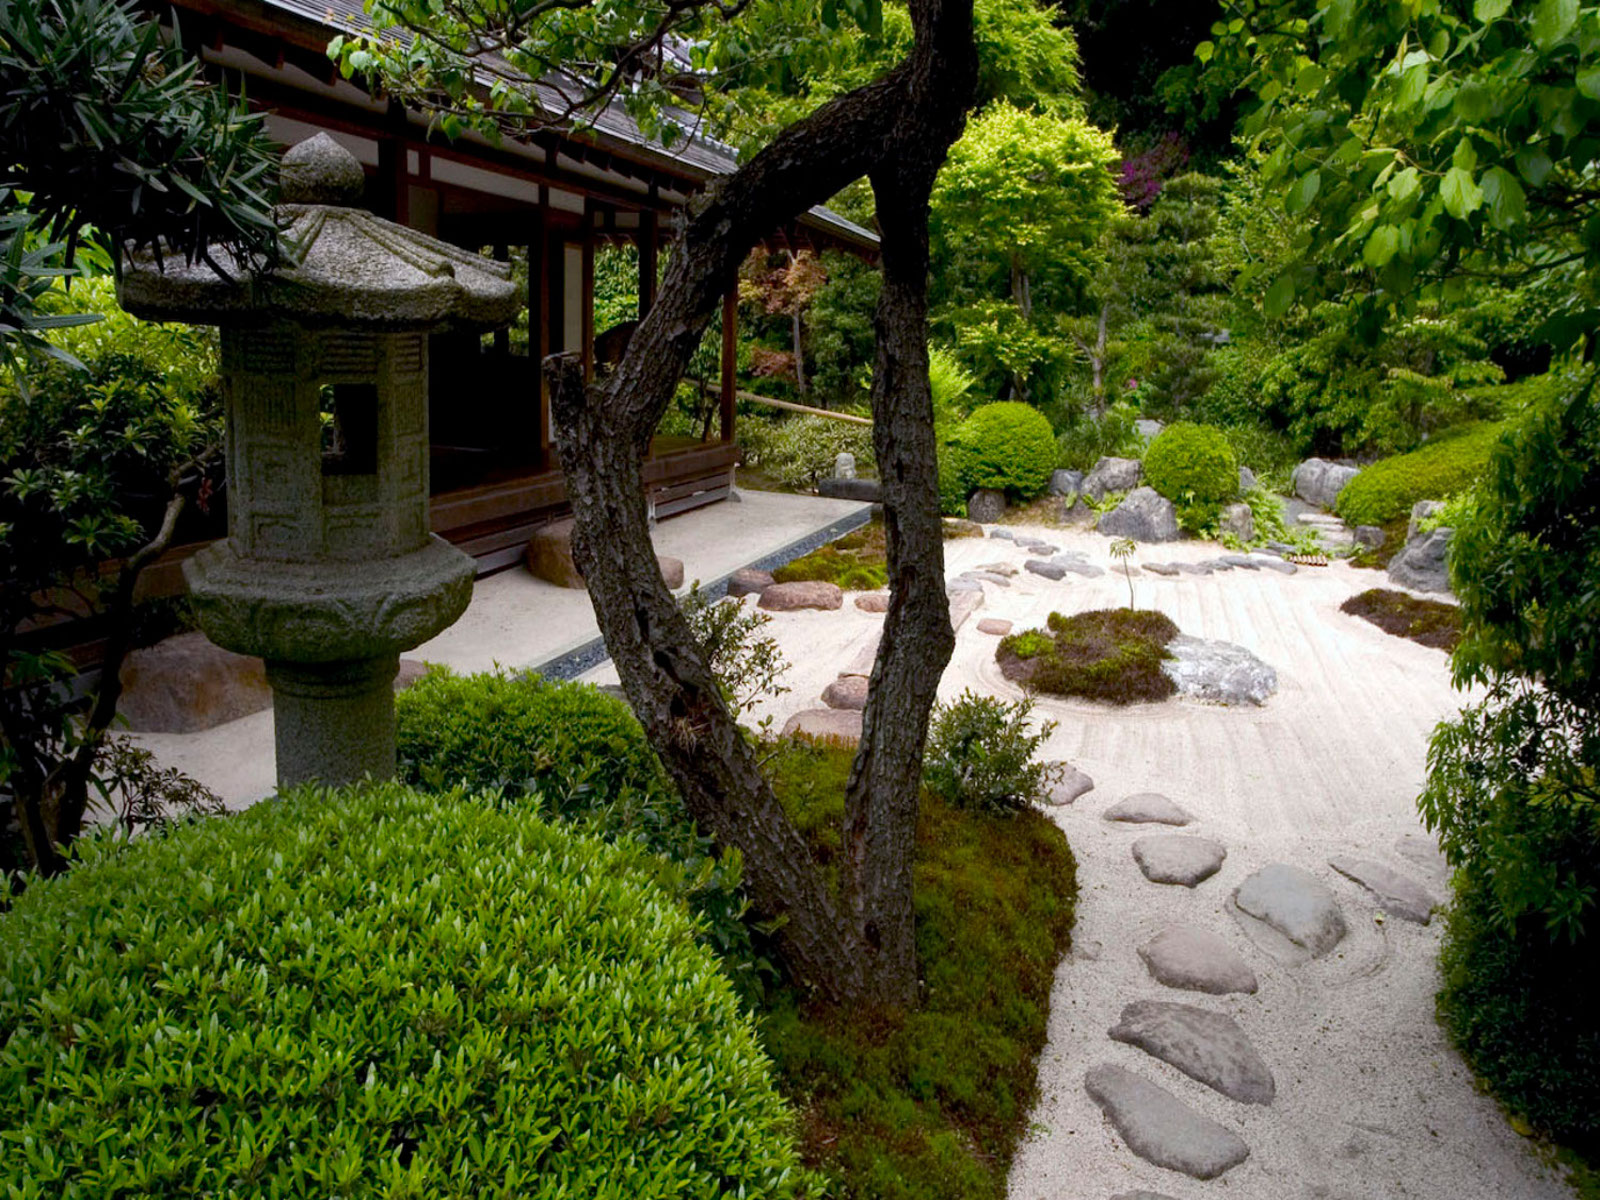 Zen garden wallpaper hd wallpaper pictures gallery for Japanese garden design